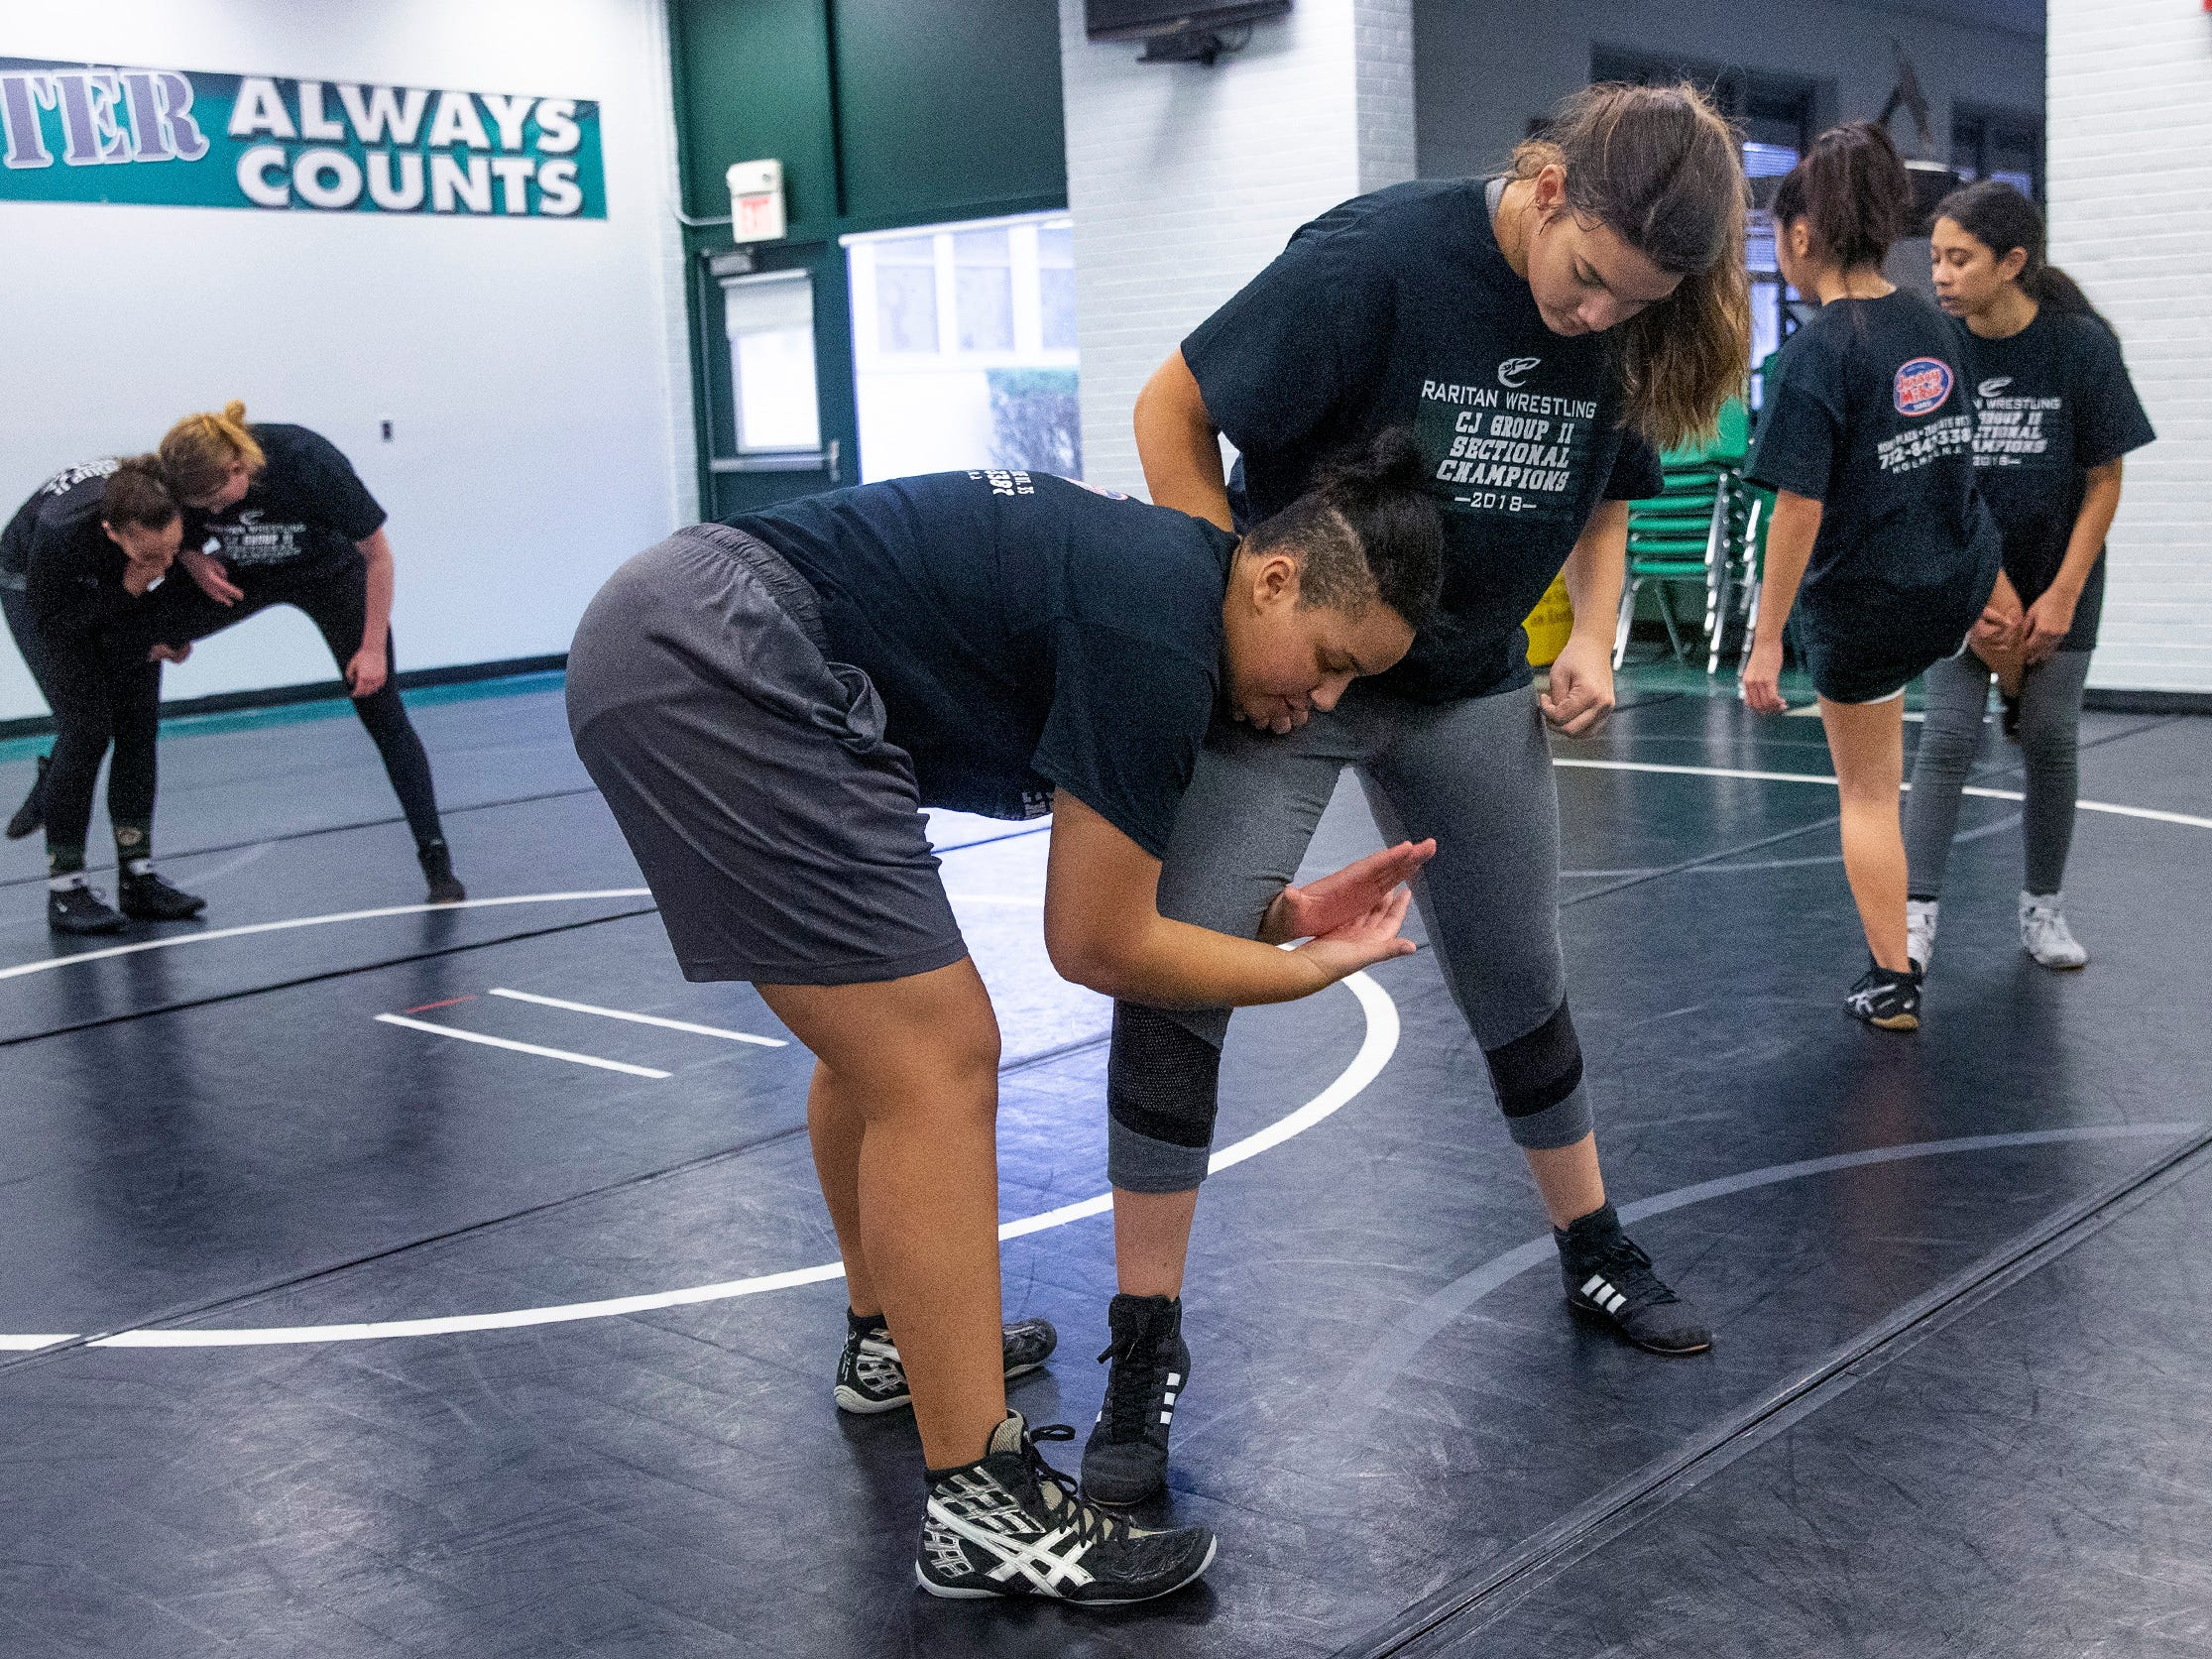 Mia Lazaurs and Gianna Seeley work on wizarNJSIAA is offering wrestling for girls this year and they will participate in an all girls tournament at the end of the season. Raritan High School Wrestling is fielding nearly a  full girls team this year. While girls mostly practice separately from the boys, they are in a room next to the boys and frequent coaching sessions happen in the boys room to teach moves.